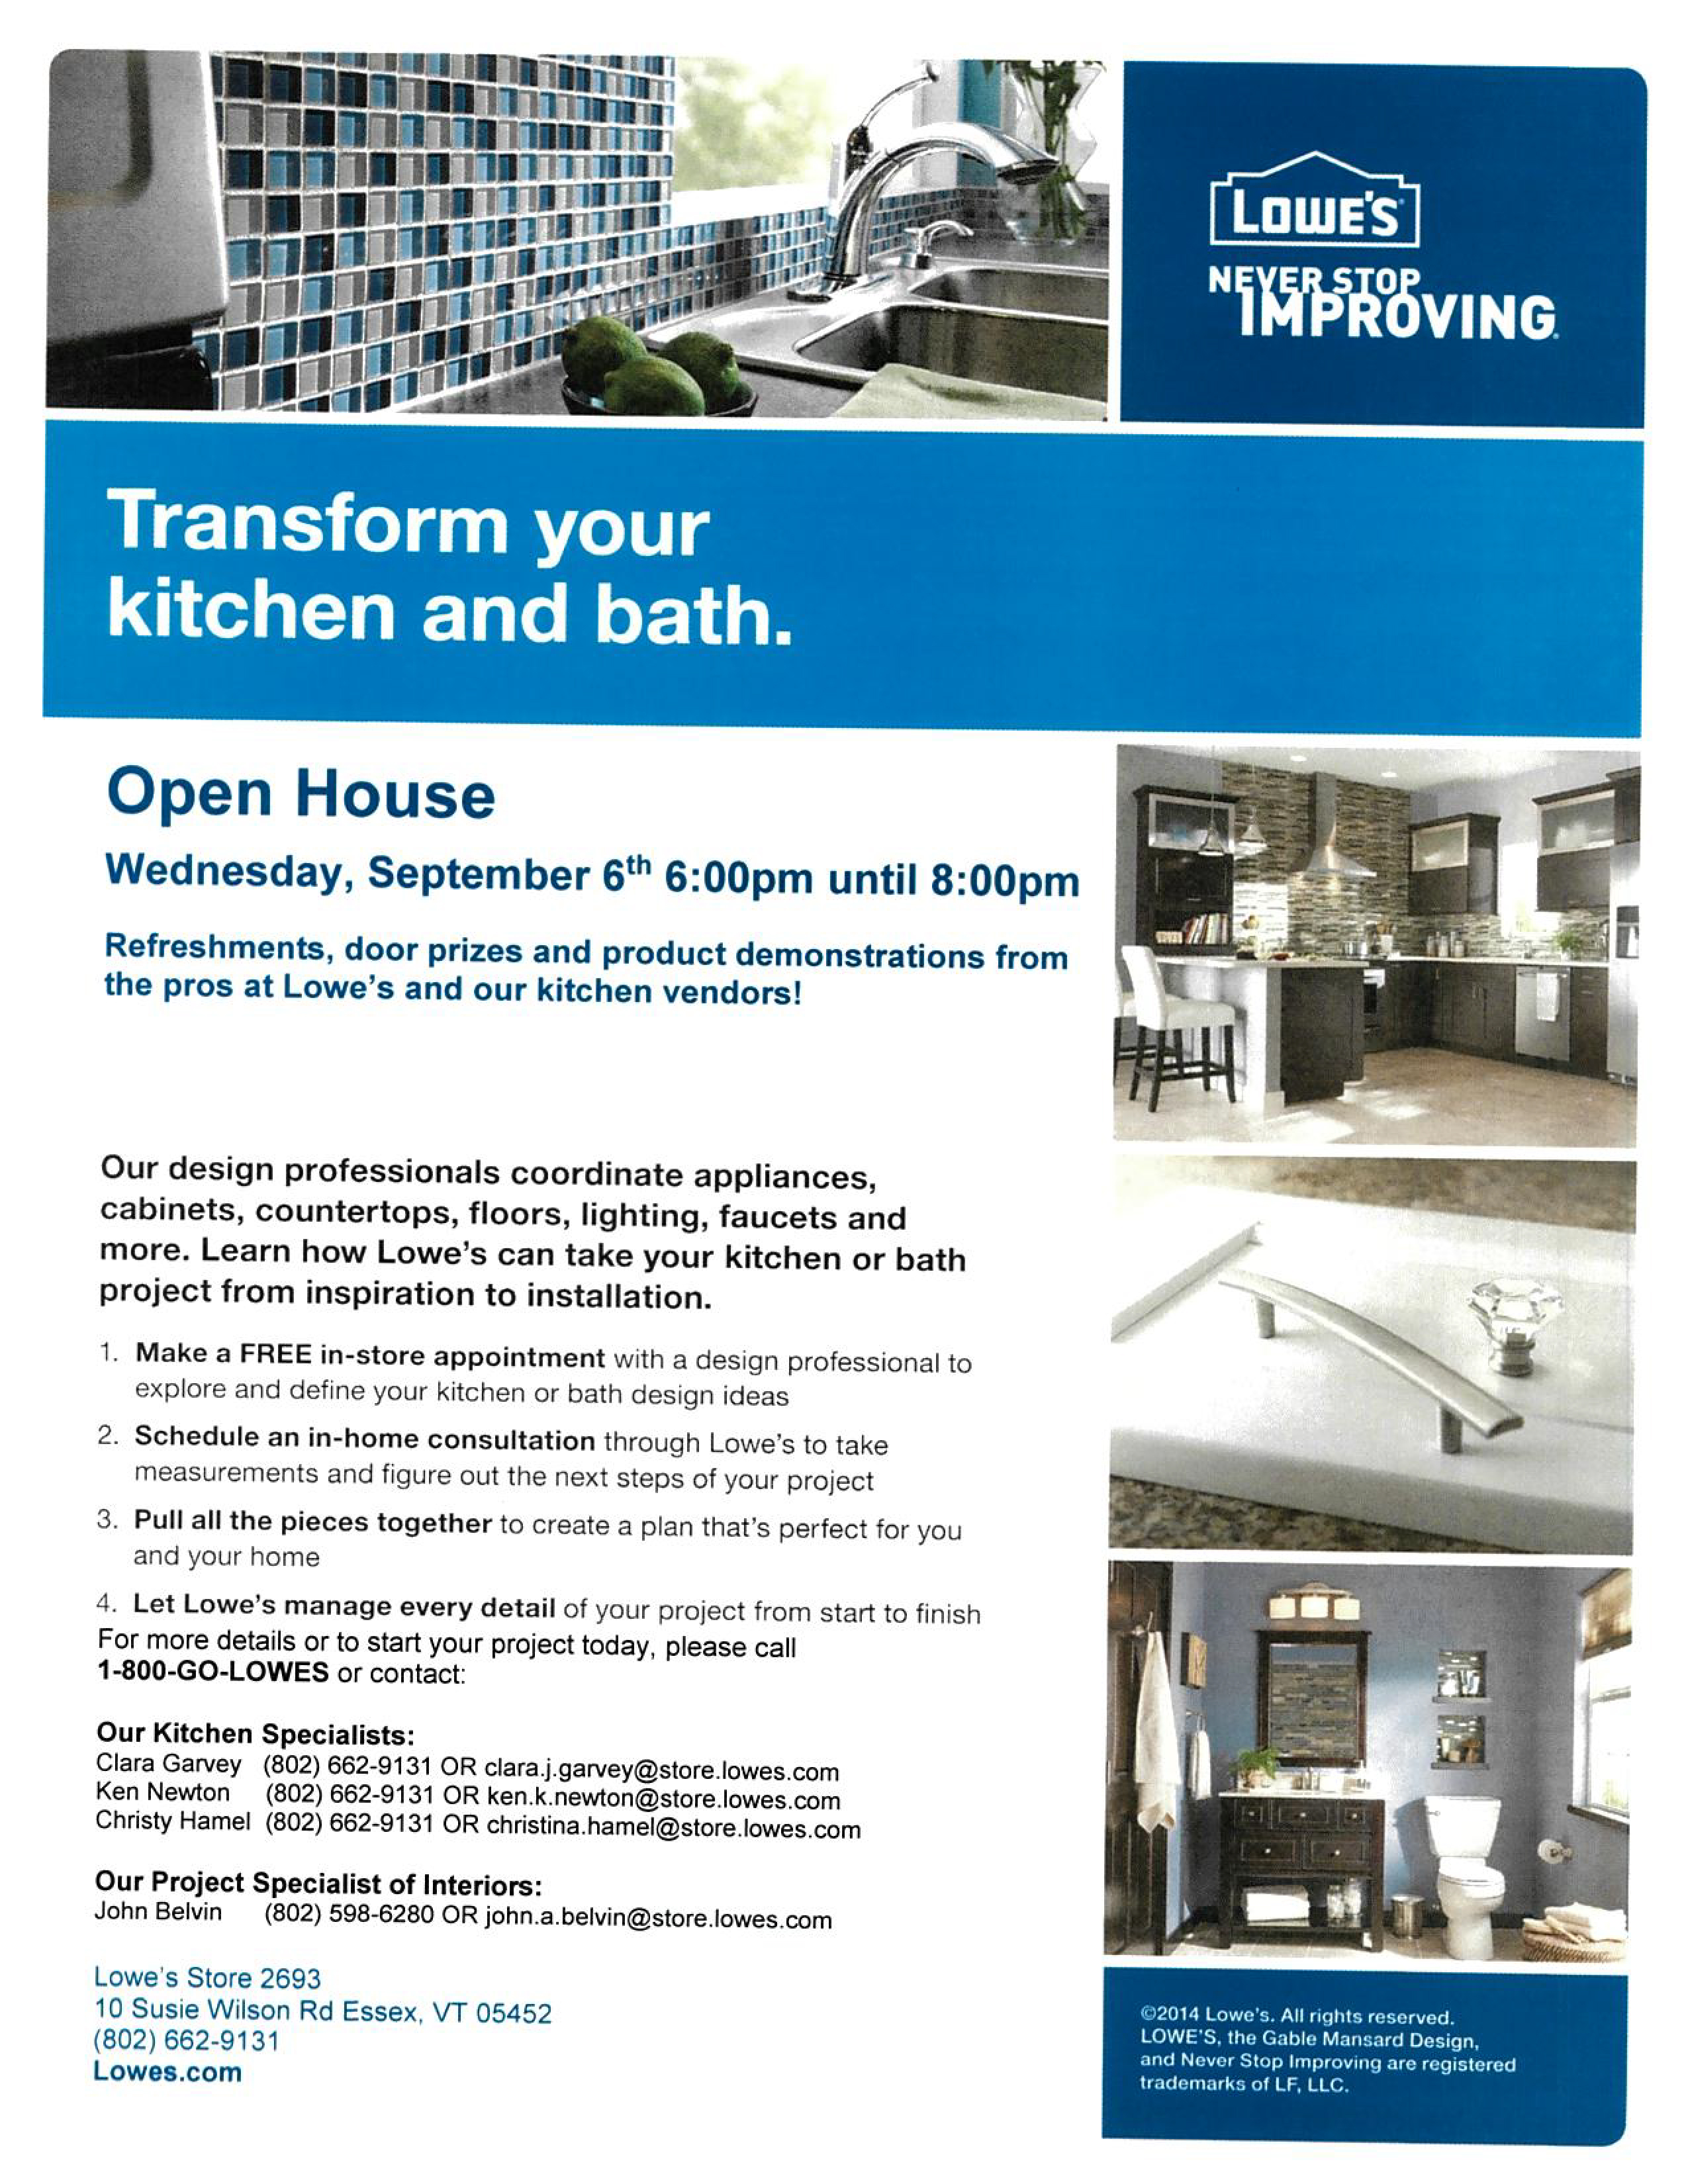 Lowes In Essex Is Having An Open House For Kitchen